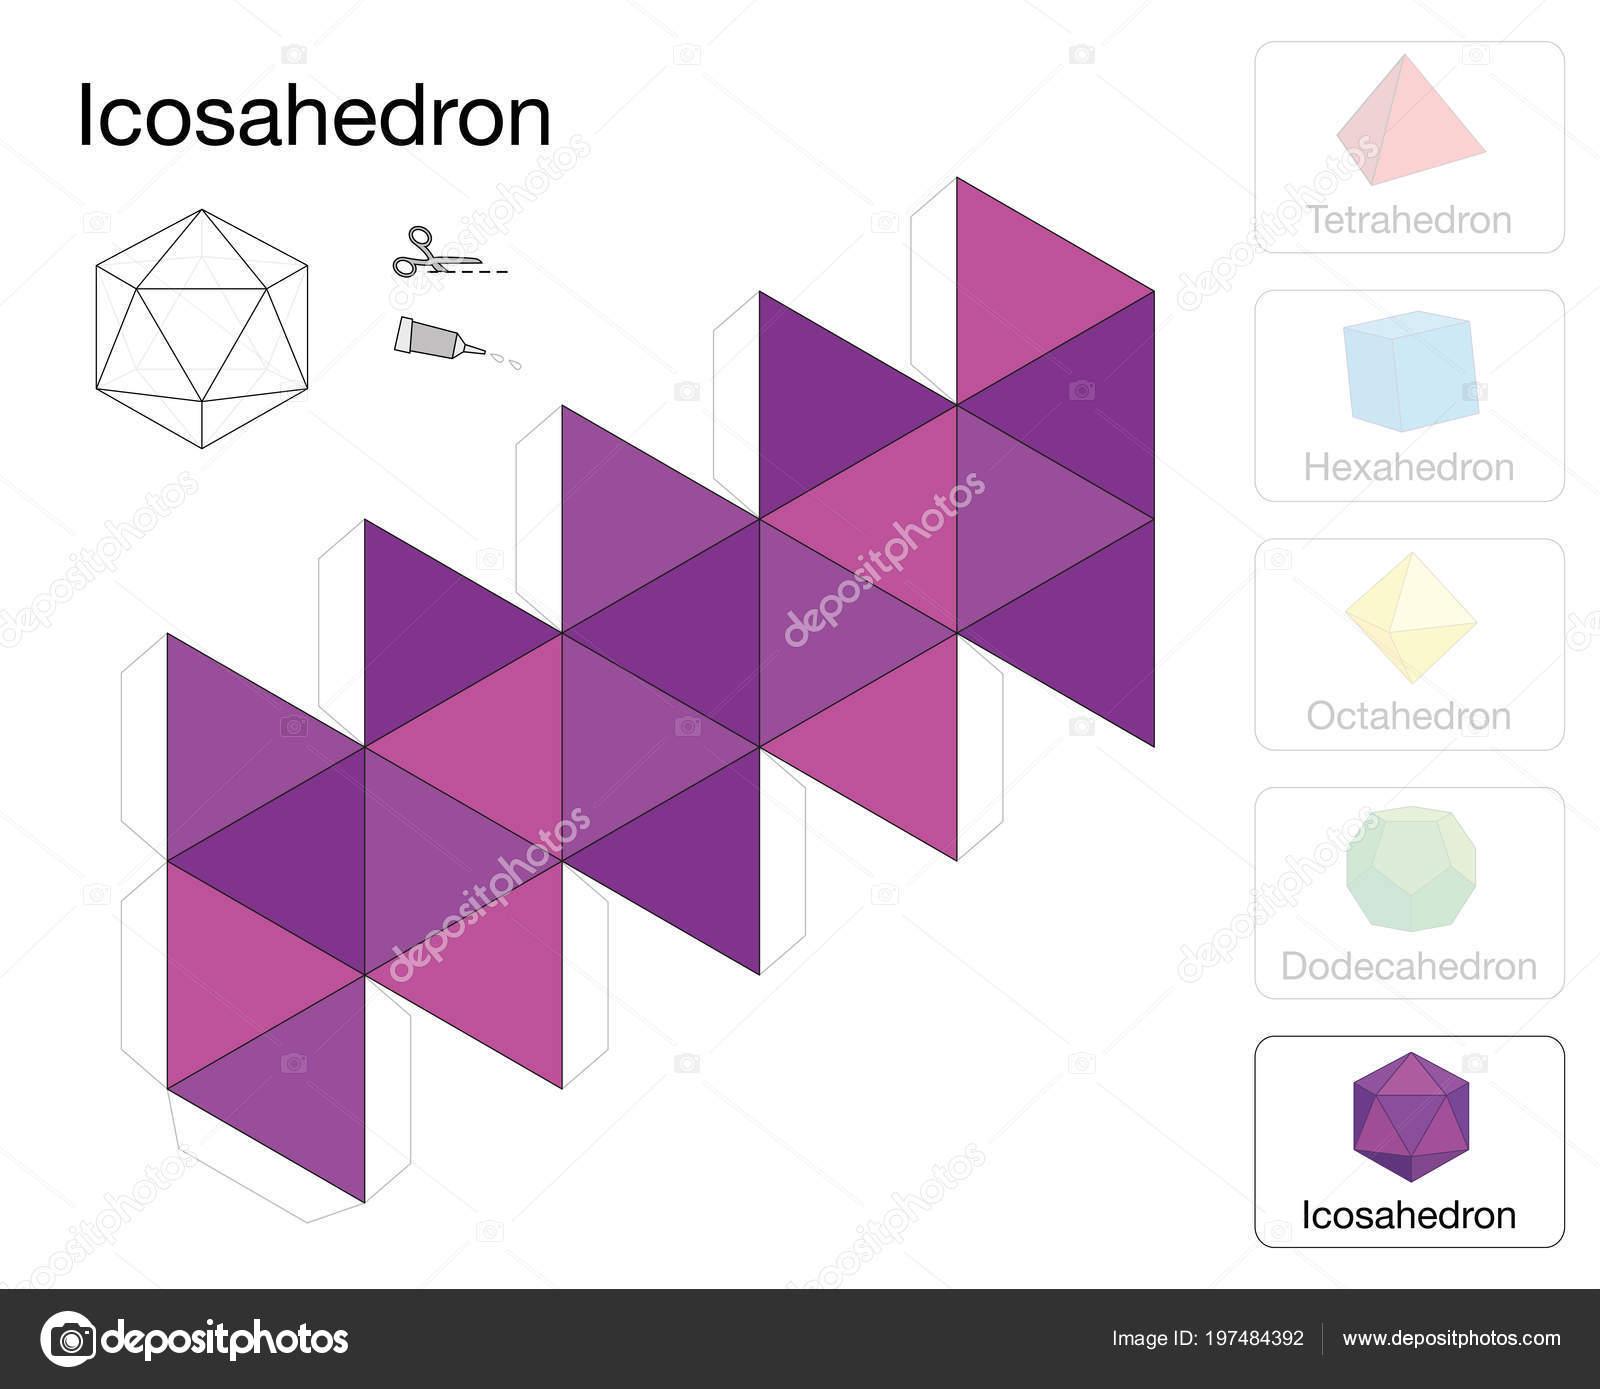 Icosahedron Platonic Solid Template Paper Model Icosahedron One Five